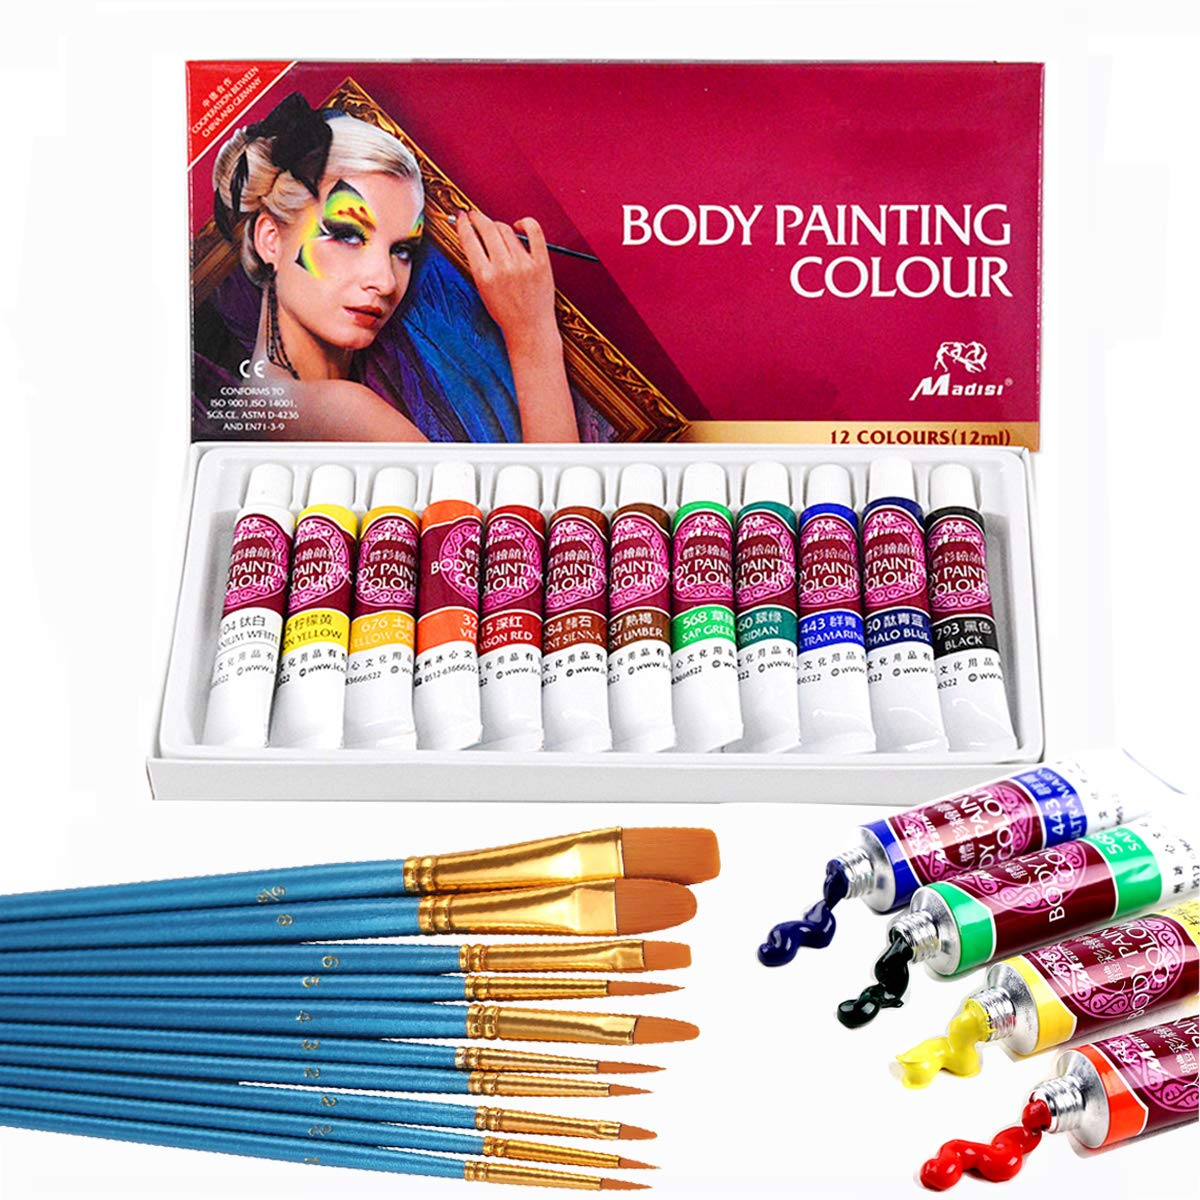 Face Paint Kit,12 Colors Professional Face Painting Tubes, Non-Toxic & Hypoallergenic Body Paint Halloween Makeup, Rich Pigment, Face Painting Kits with 10Pieces Round Pointed Tip Nylon Hair Brush